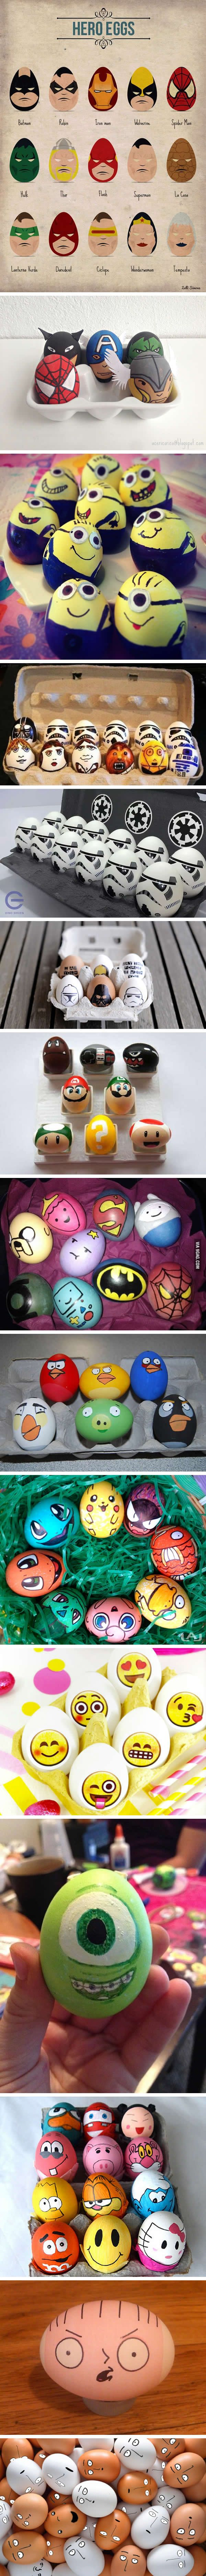 Some awesome Easter Egg ideas for you, if you don't want traditional ones